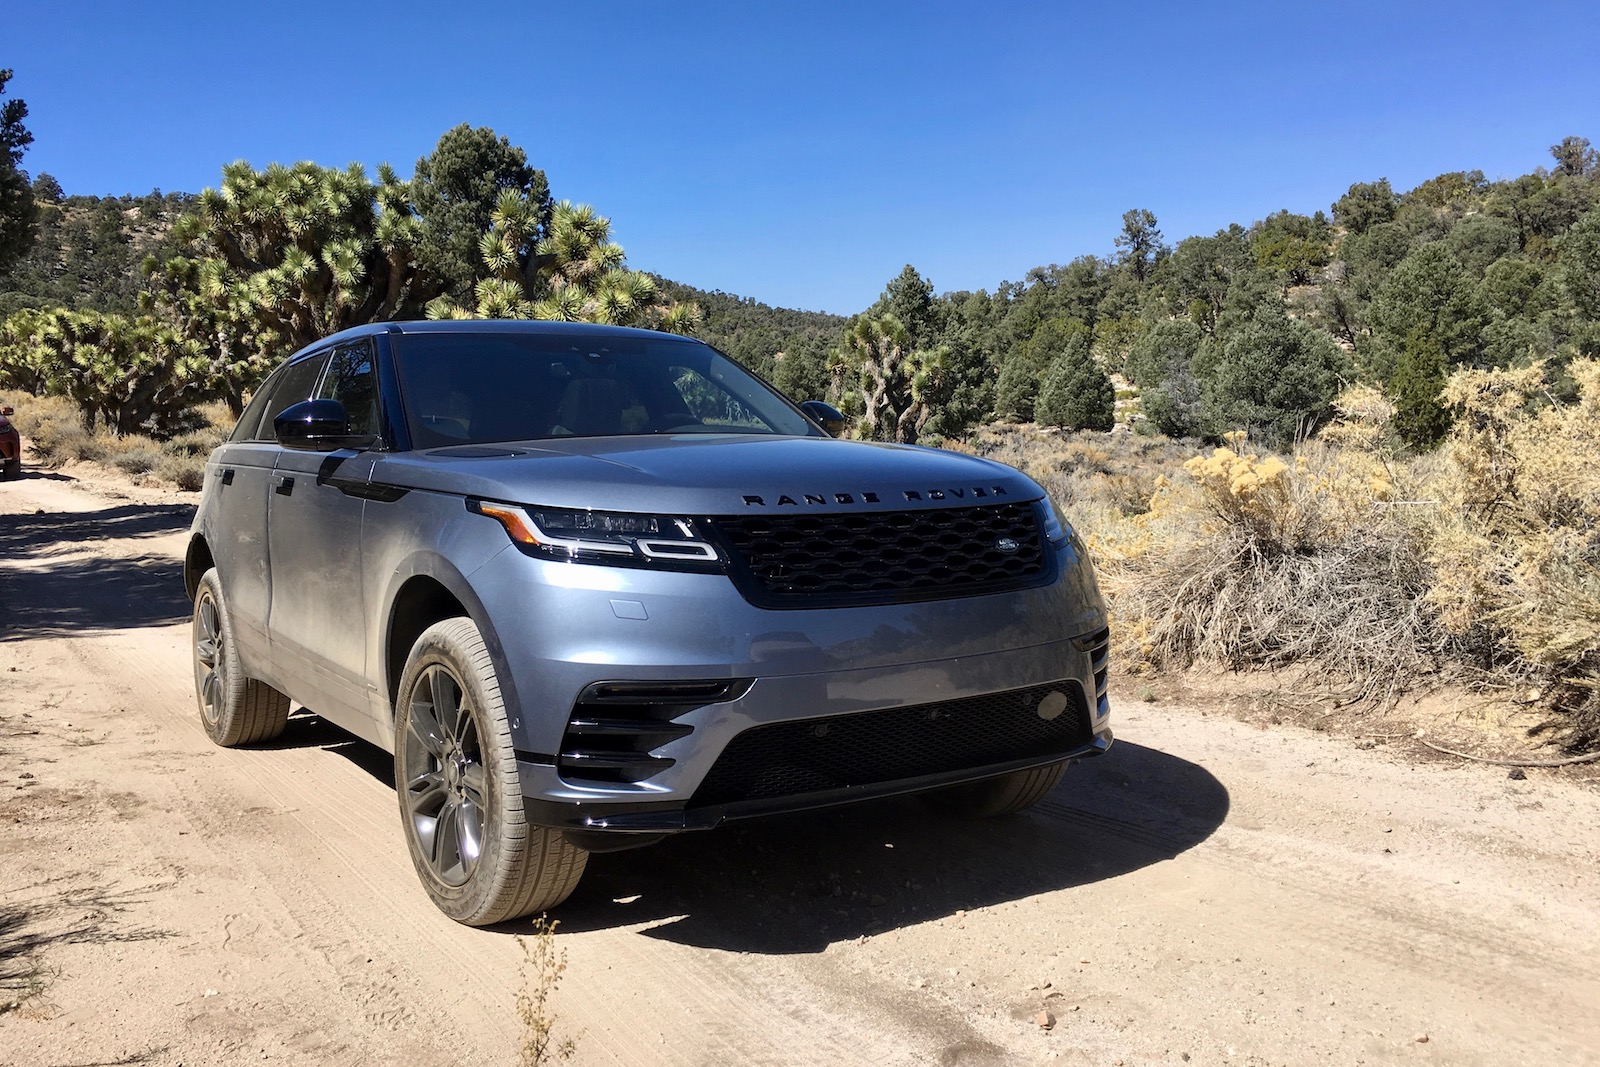 2018 range rover velar revealed an avant garde mid size luxury suv slotting between evoque and. Black Bedroom Furniture Sets. Home Design Ideas